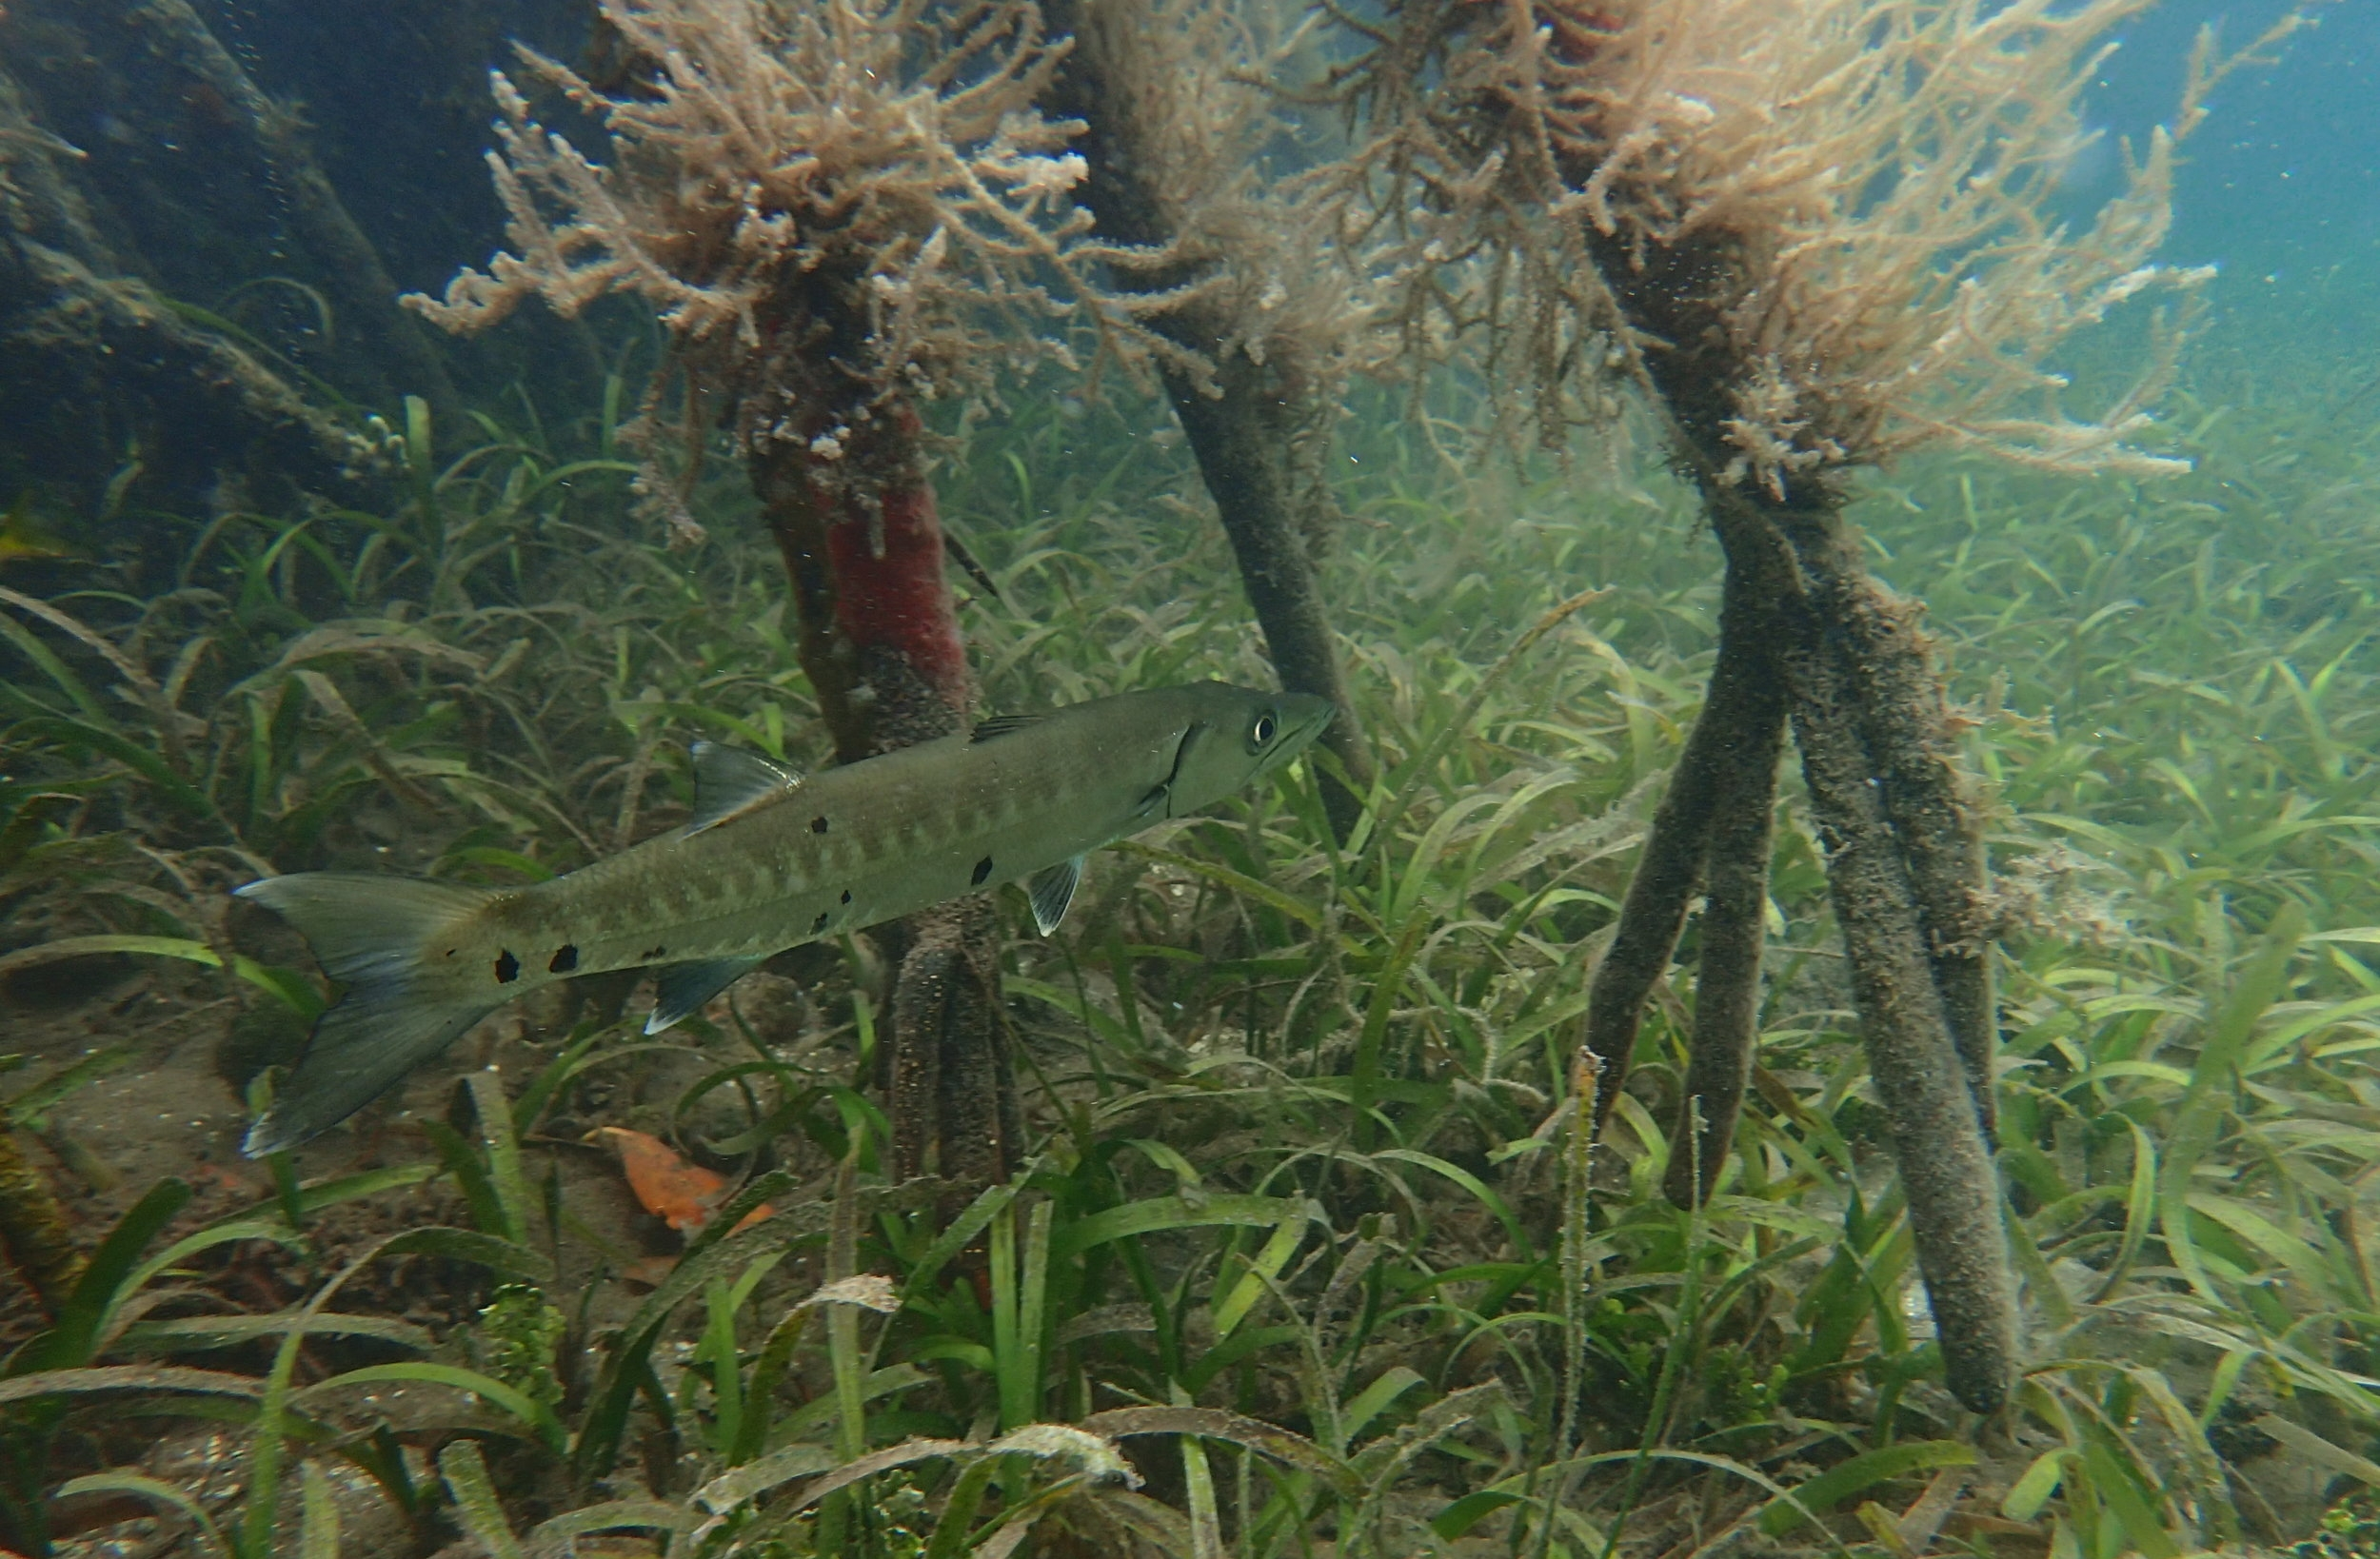 Juvenile fishes like this little barracuda,hide inshore on seagrass beds until they have matured enough to venture into deeper waters.